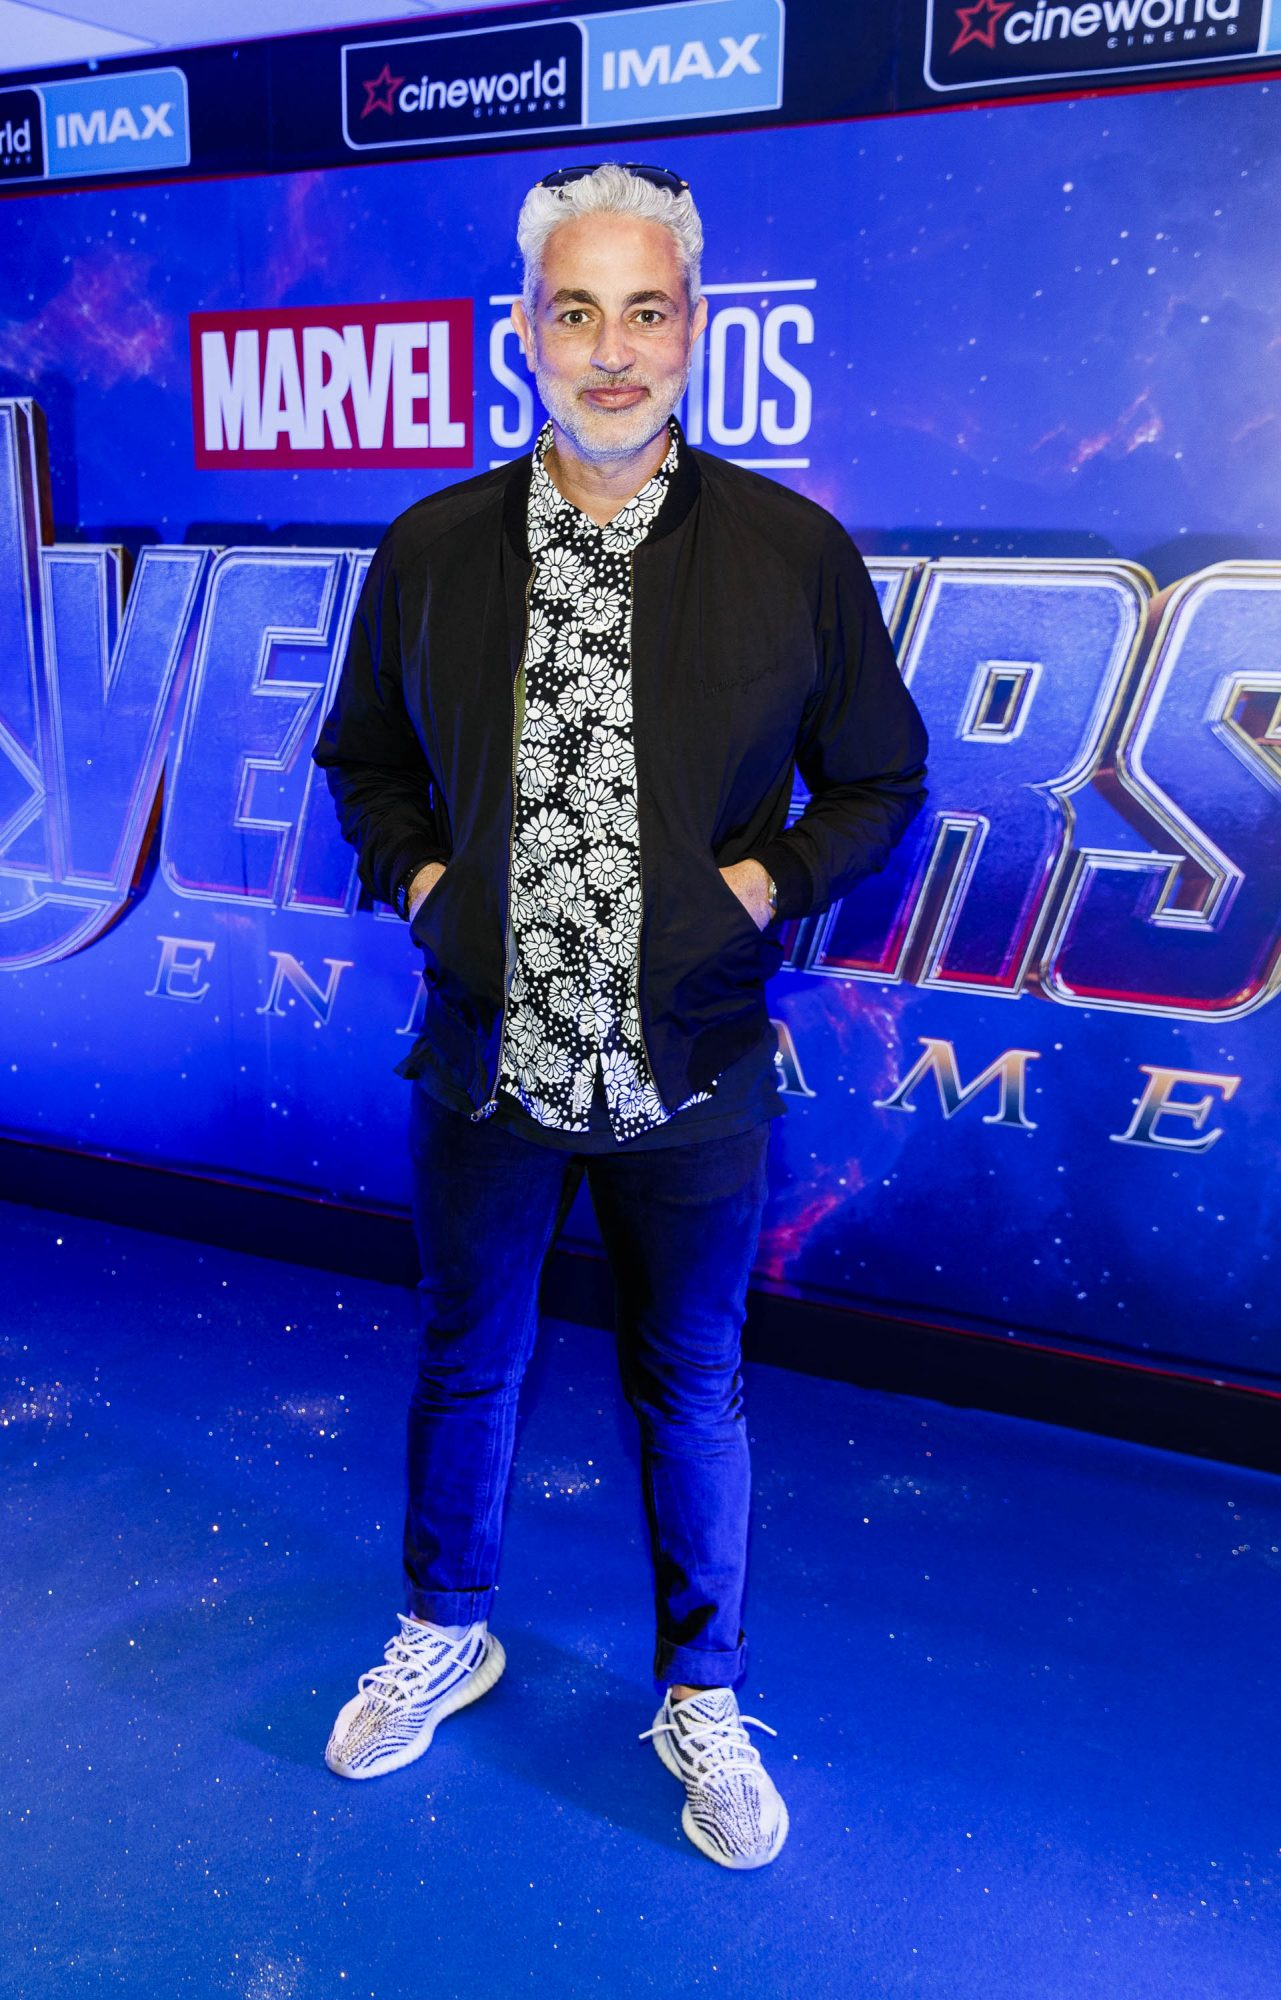 Baz Ashmawy pictured at the special preview screening of Marvel Studios' Avengers: Endgame at Cineworld Dublin. Picture by: Andres Poveda